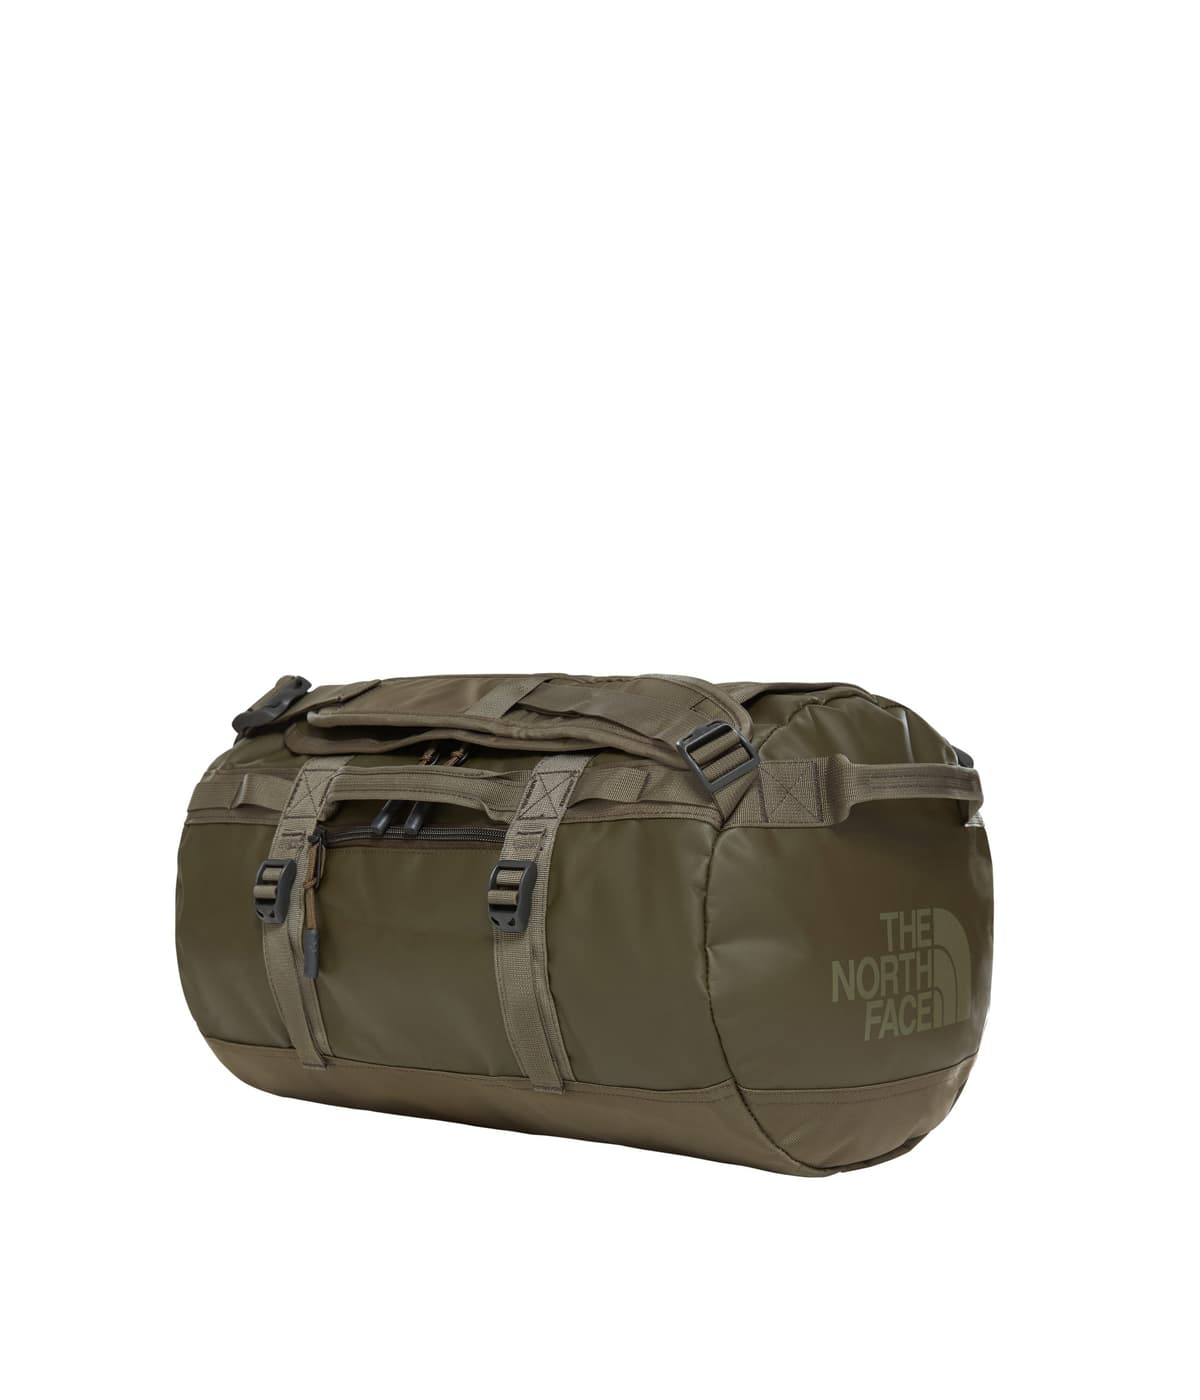 promo code 8d82a c8ef6 The North Face Base Camp Duffel XS Tasche